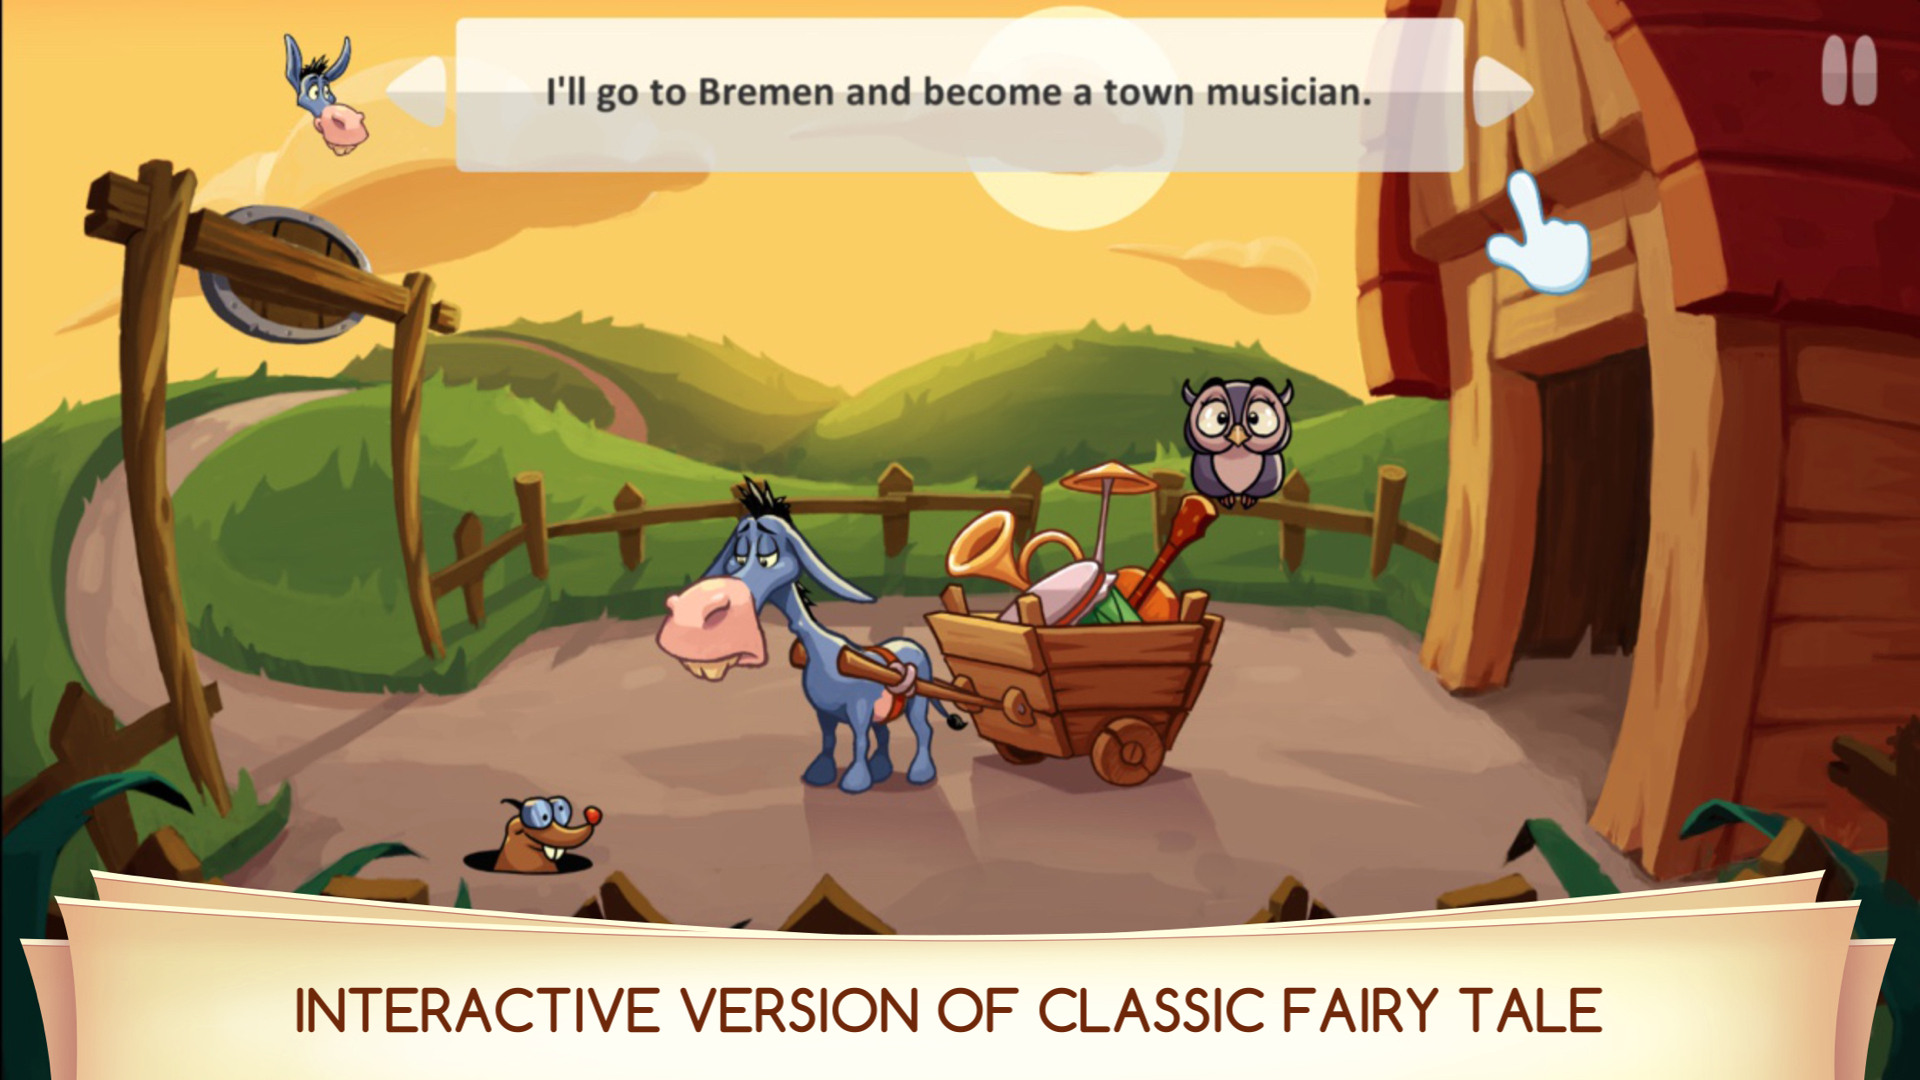 Town Musicians of Bremen - Interactive Story Pro